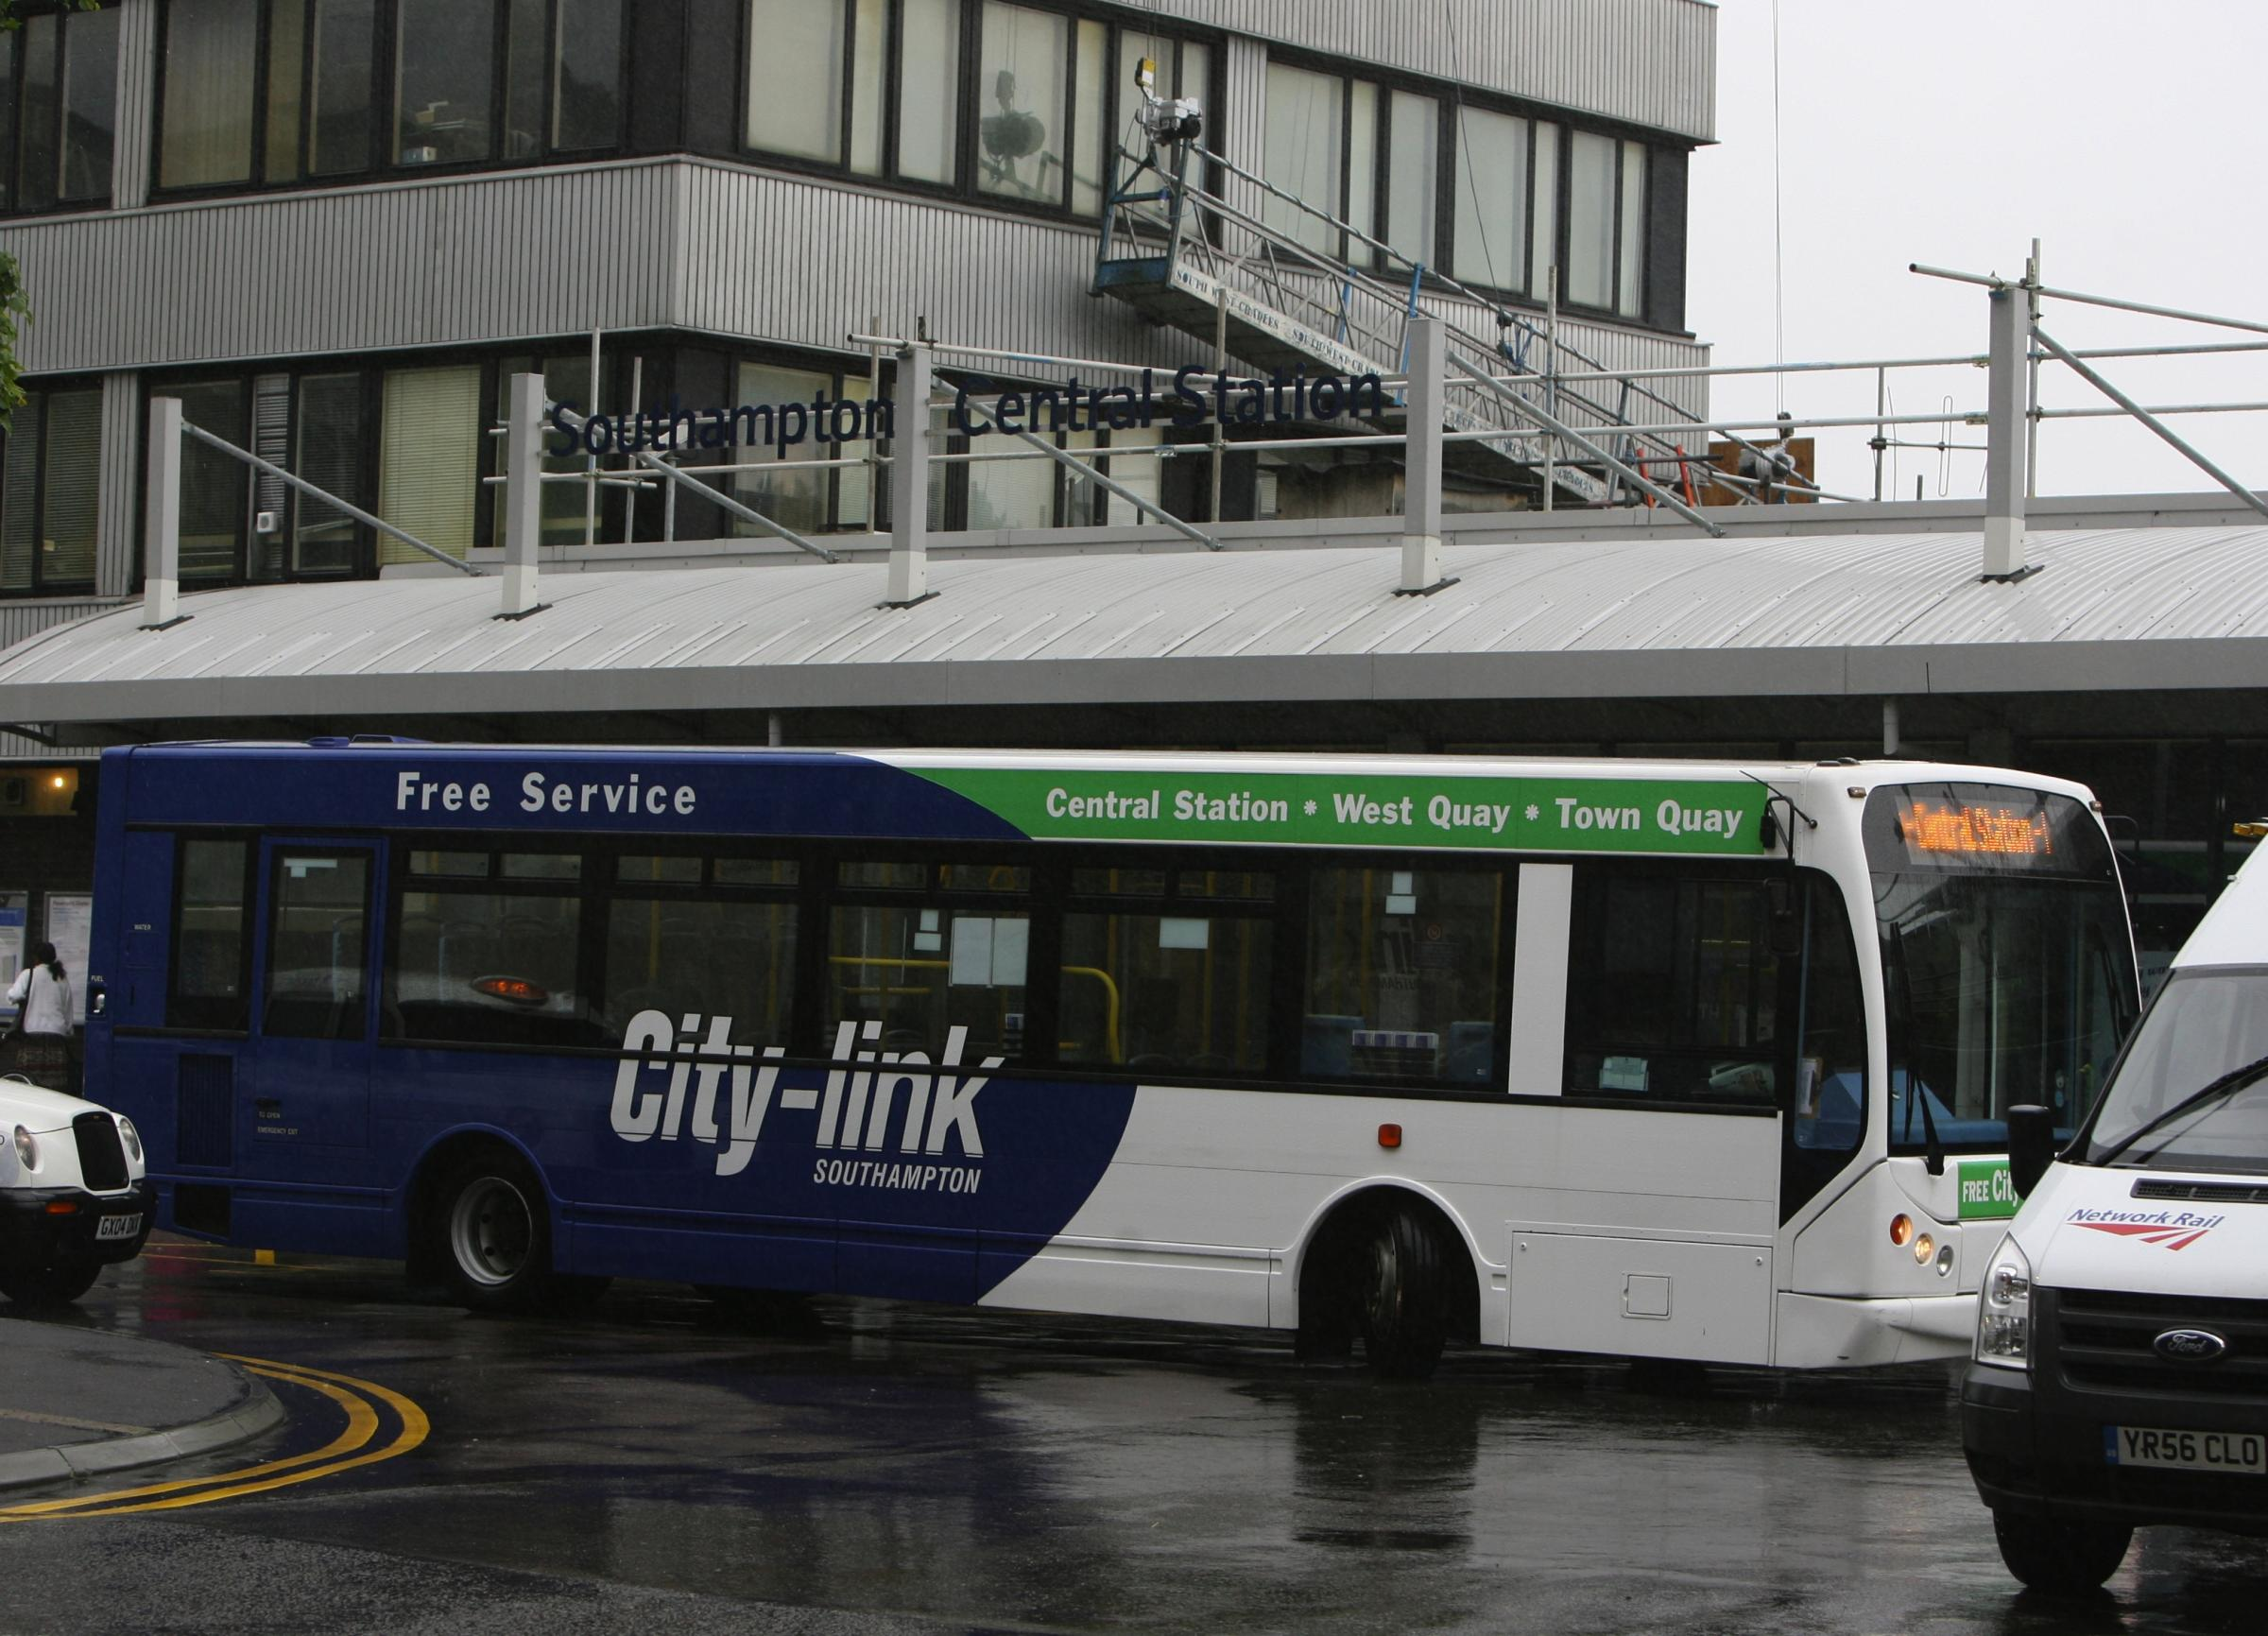 A City Link bus at Southampton Central Station